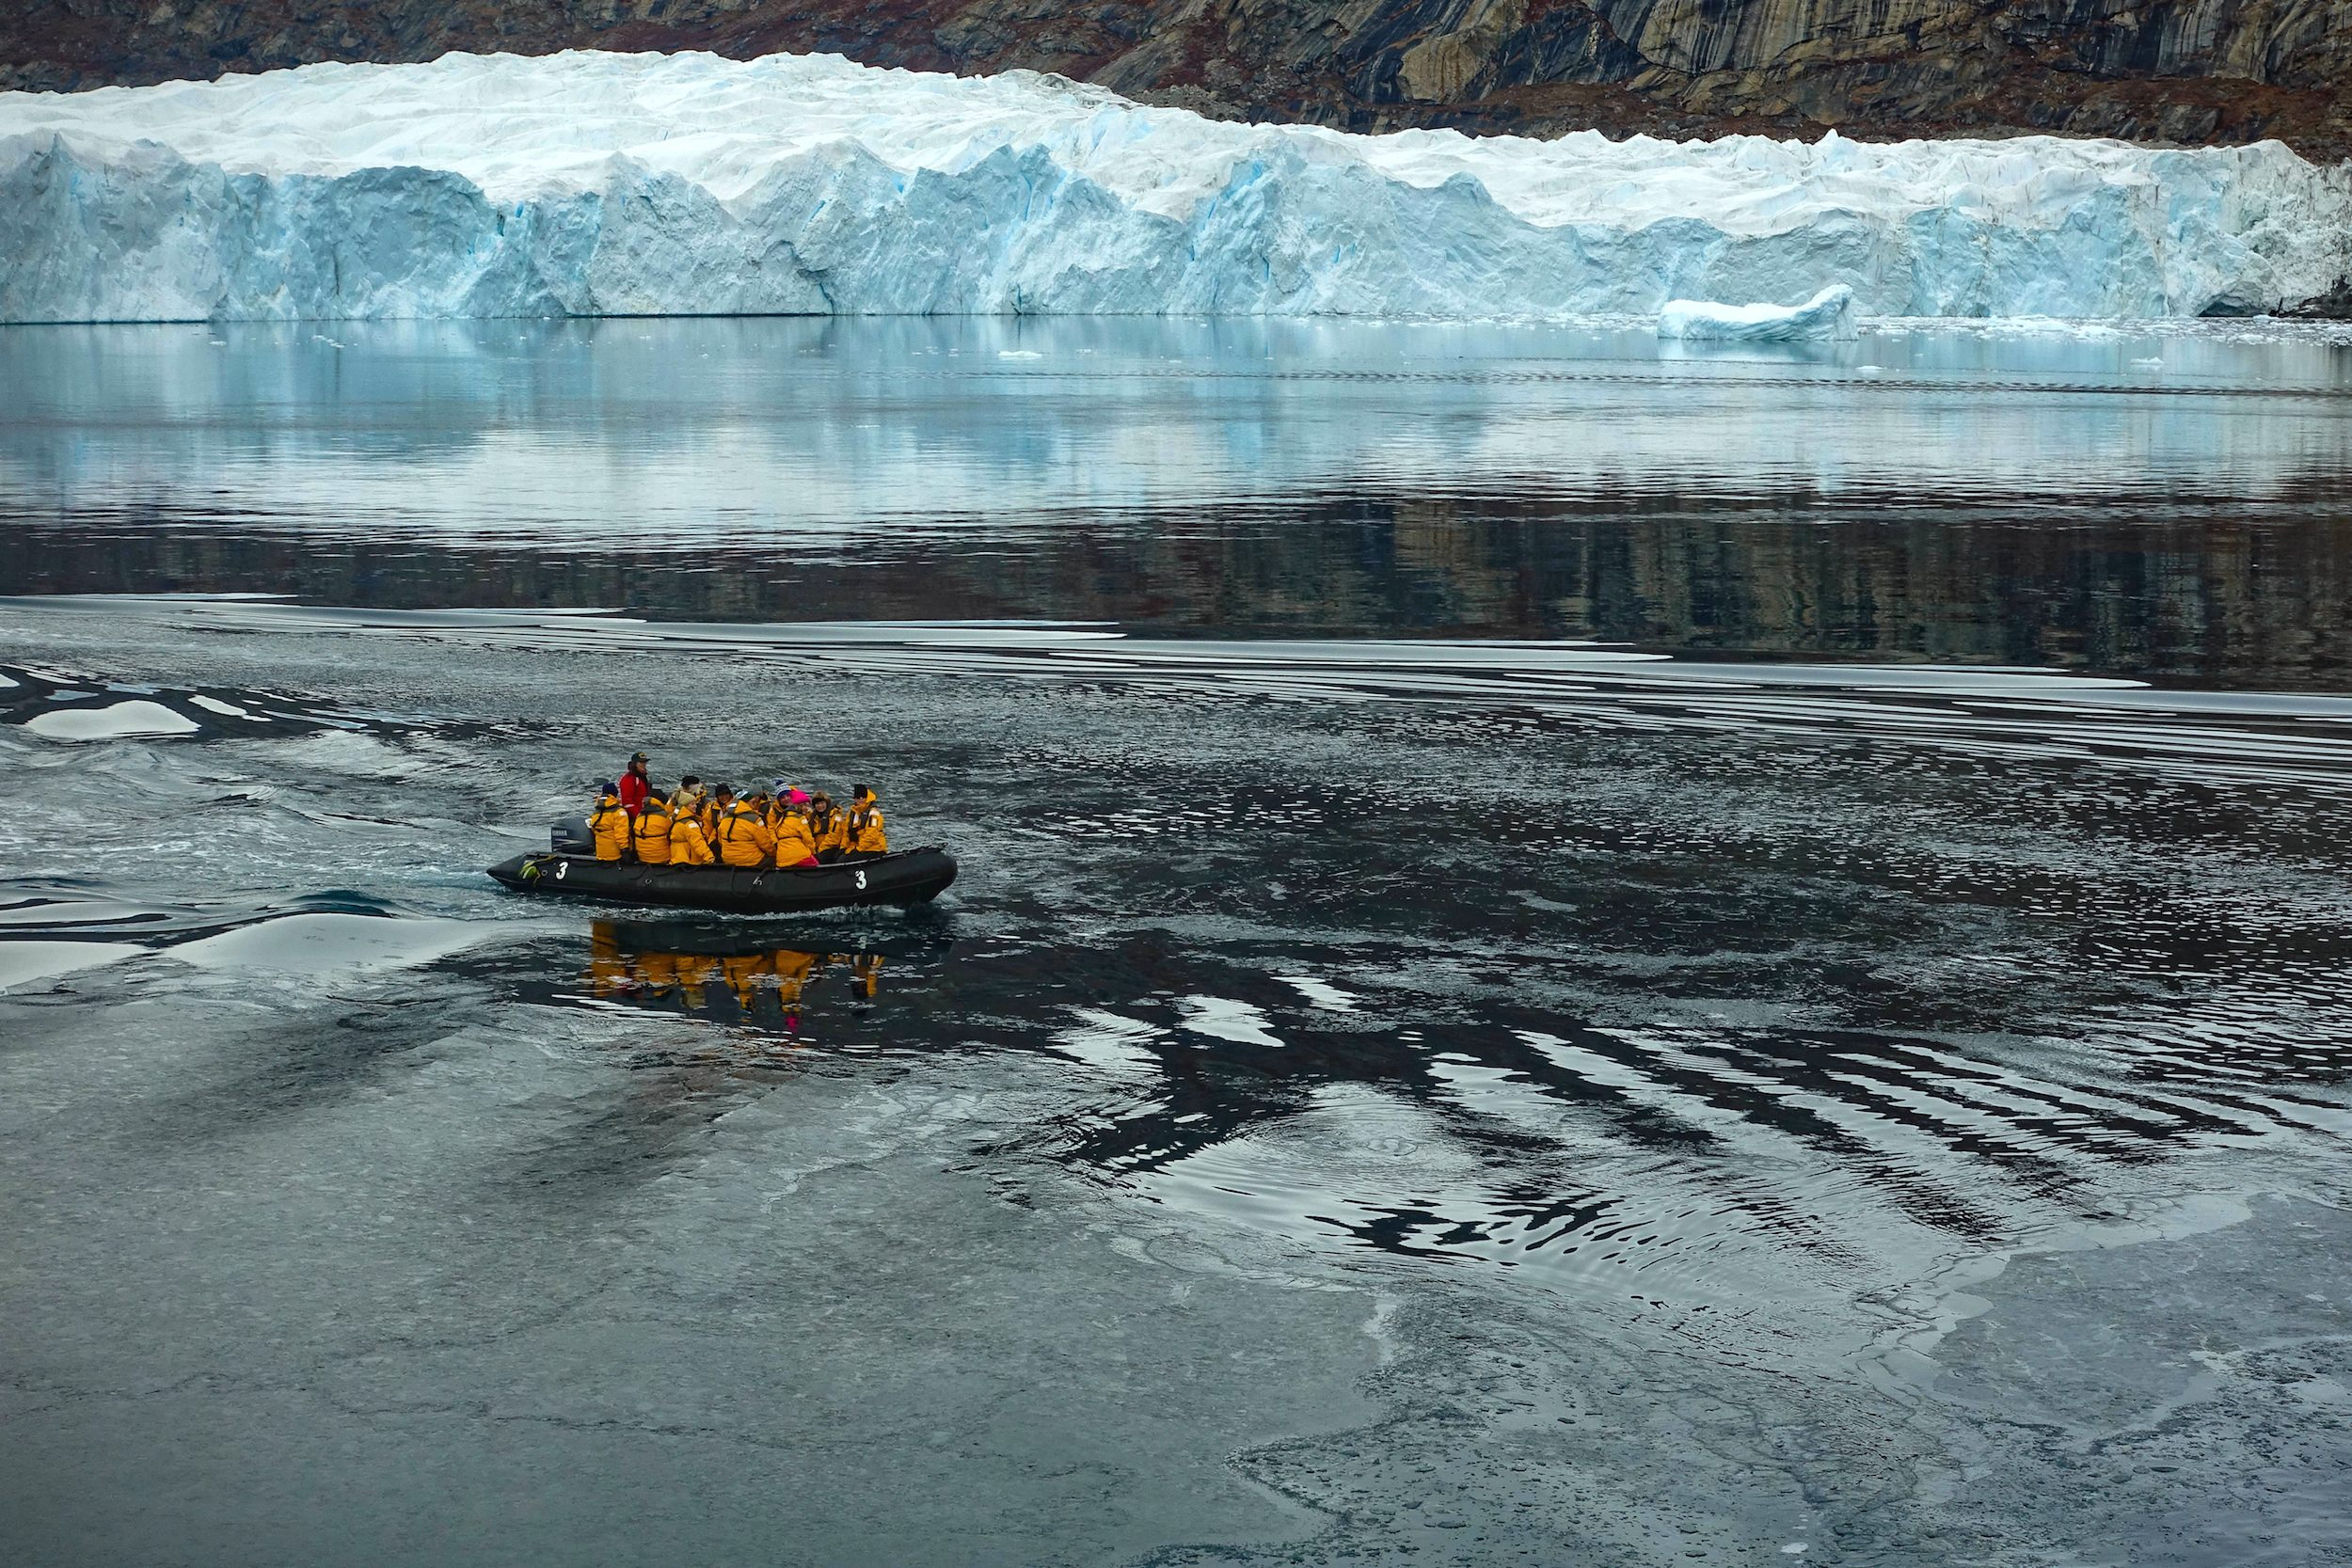 Group in a zodiac boating towards an immense, white iceberg in Greenland